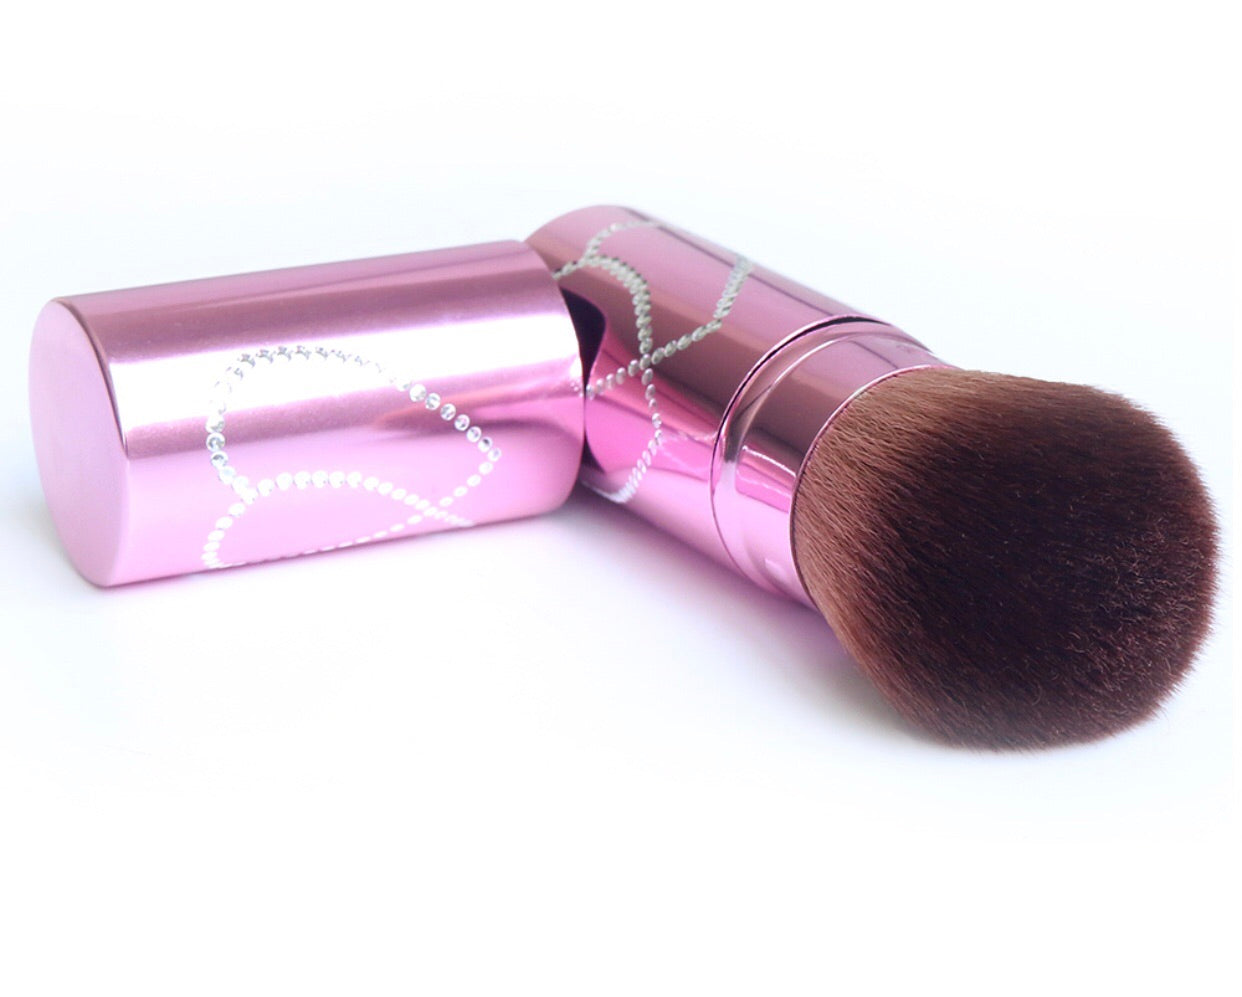 Fancy Kabuki brush with heart crystals - Classy Pink Boutique